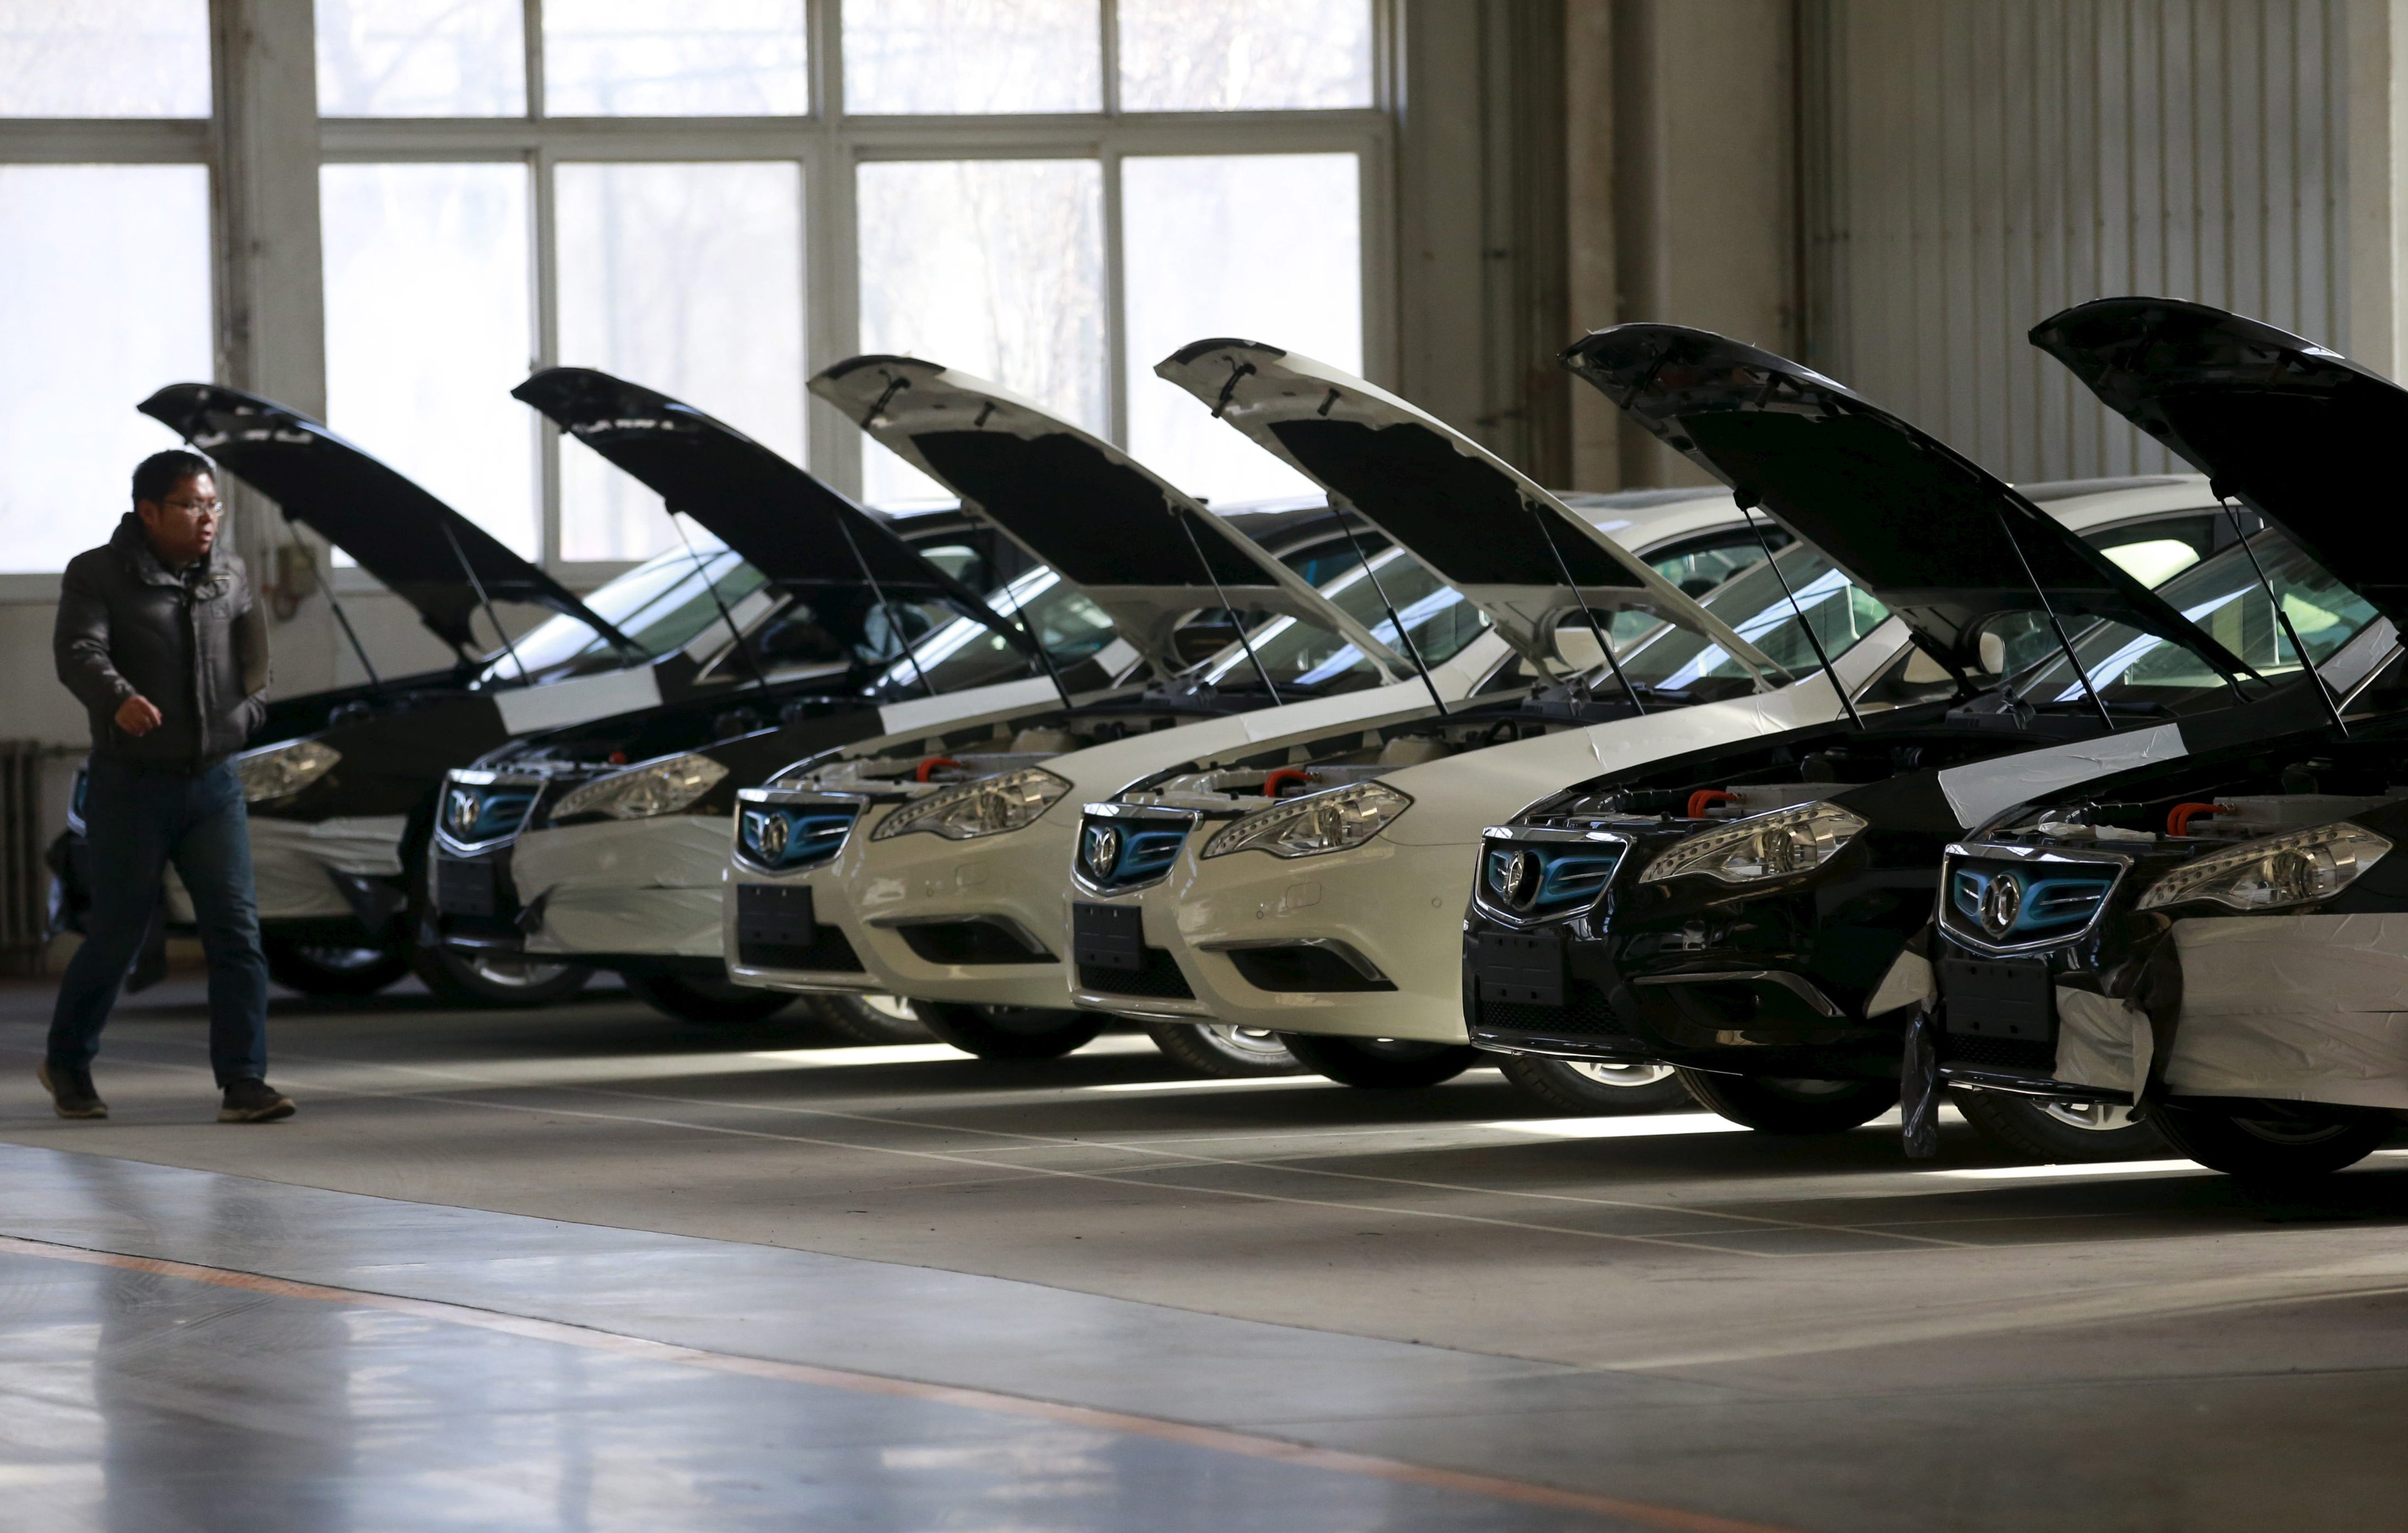 A man walks past cars at an assembly line producing electronic cars at a factory of Beijing Electric Vehicle, funded by BAIC Group, in Beijing, China, January 18, 2016.REUTERS/Kim Kyung-Hoon - RTX22VIN